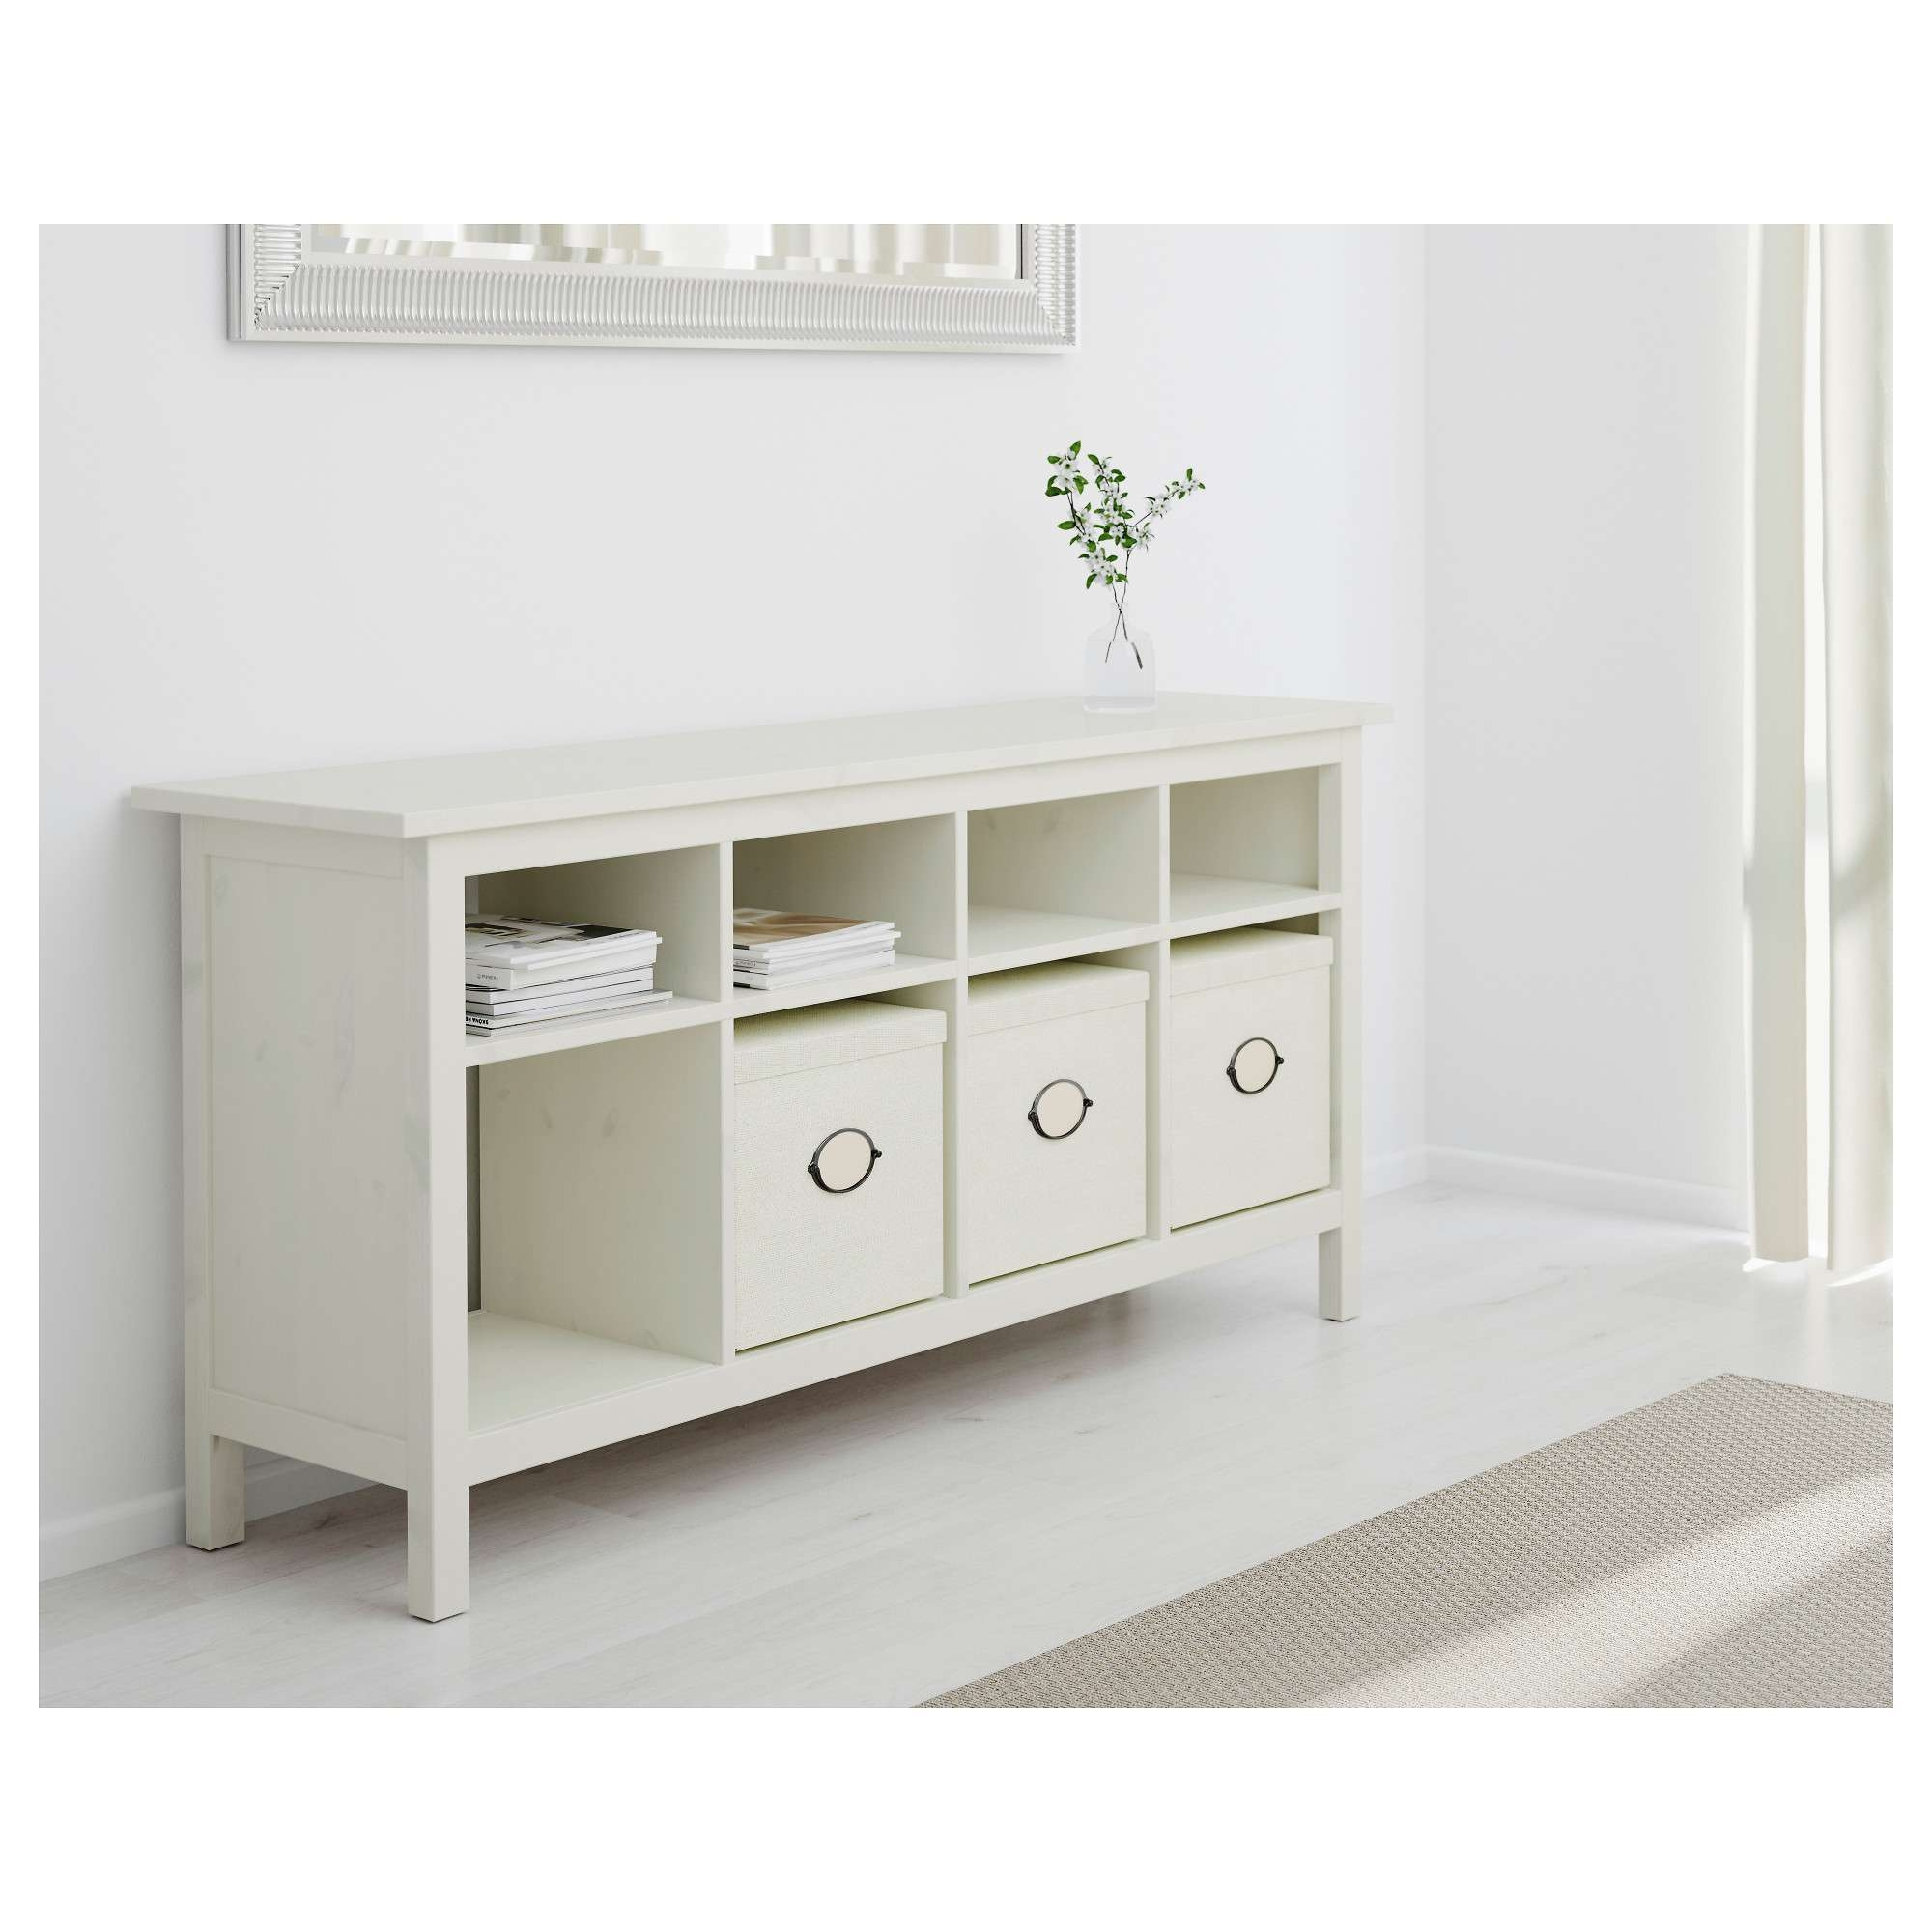 Hemnes Console Table White Stain 157x40 Cm – Ikea Throughout Ikea Hemnes Sideboards (View 5 of 20)